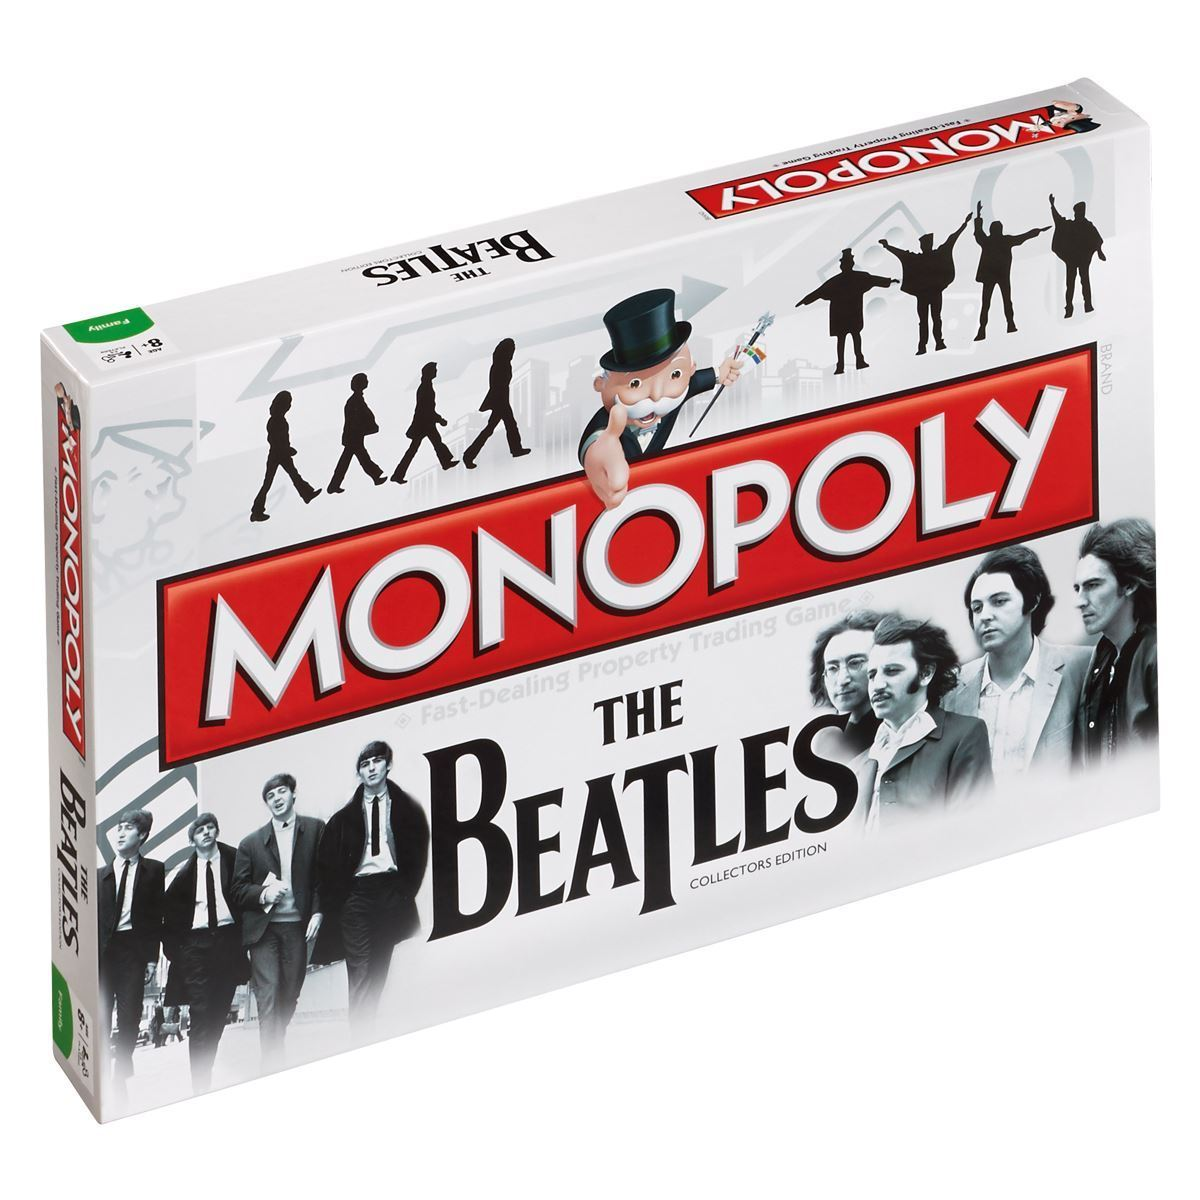 hra Beatles - Monopoly - WM-MONO-BEATLES